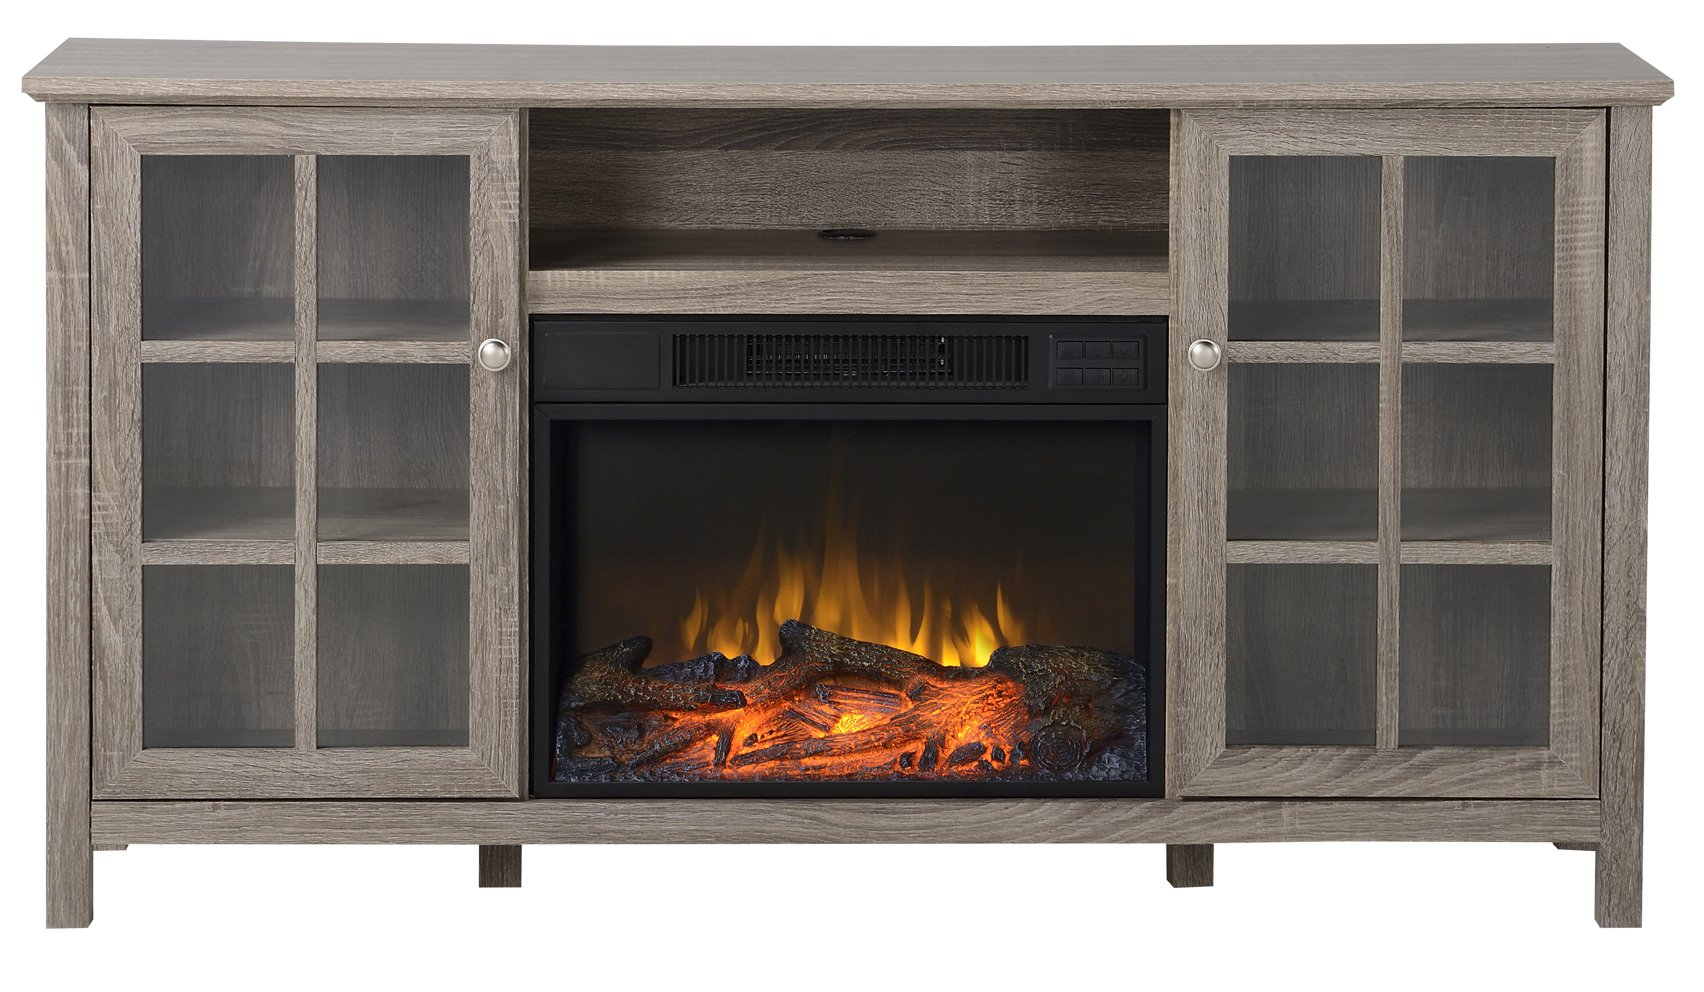 Homestar Provence 60'' Wide Media Fireplace in Reclaimed Wood